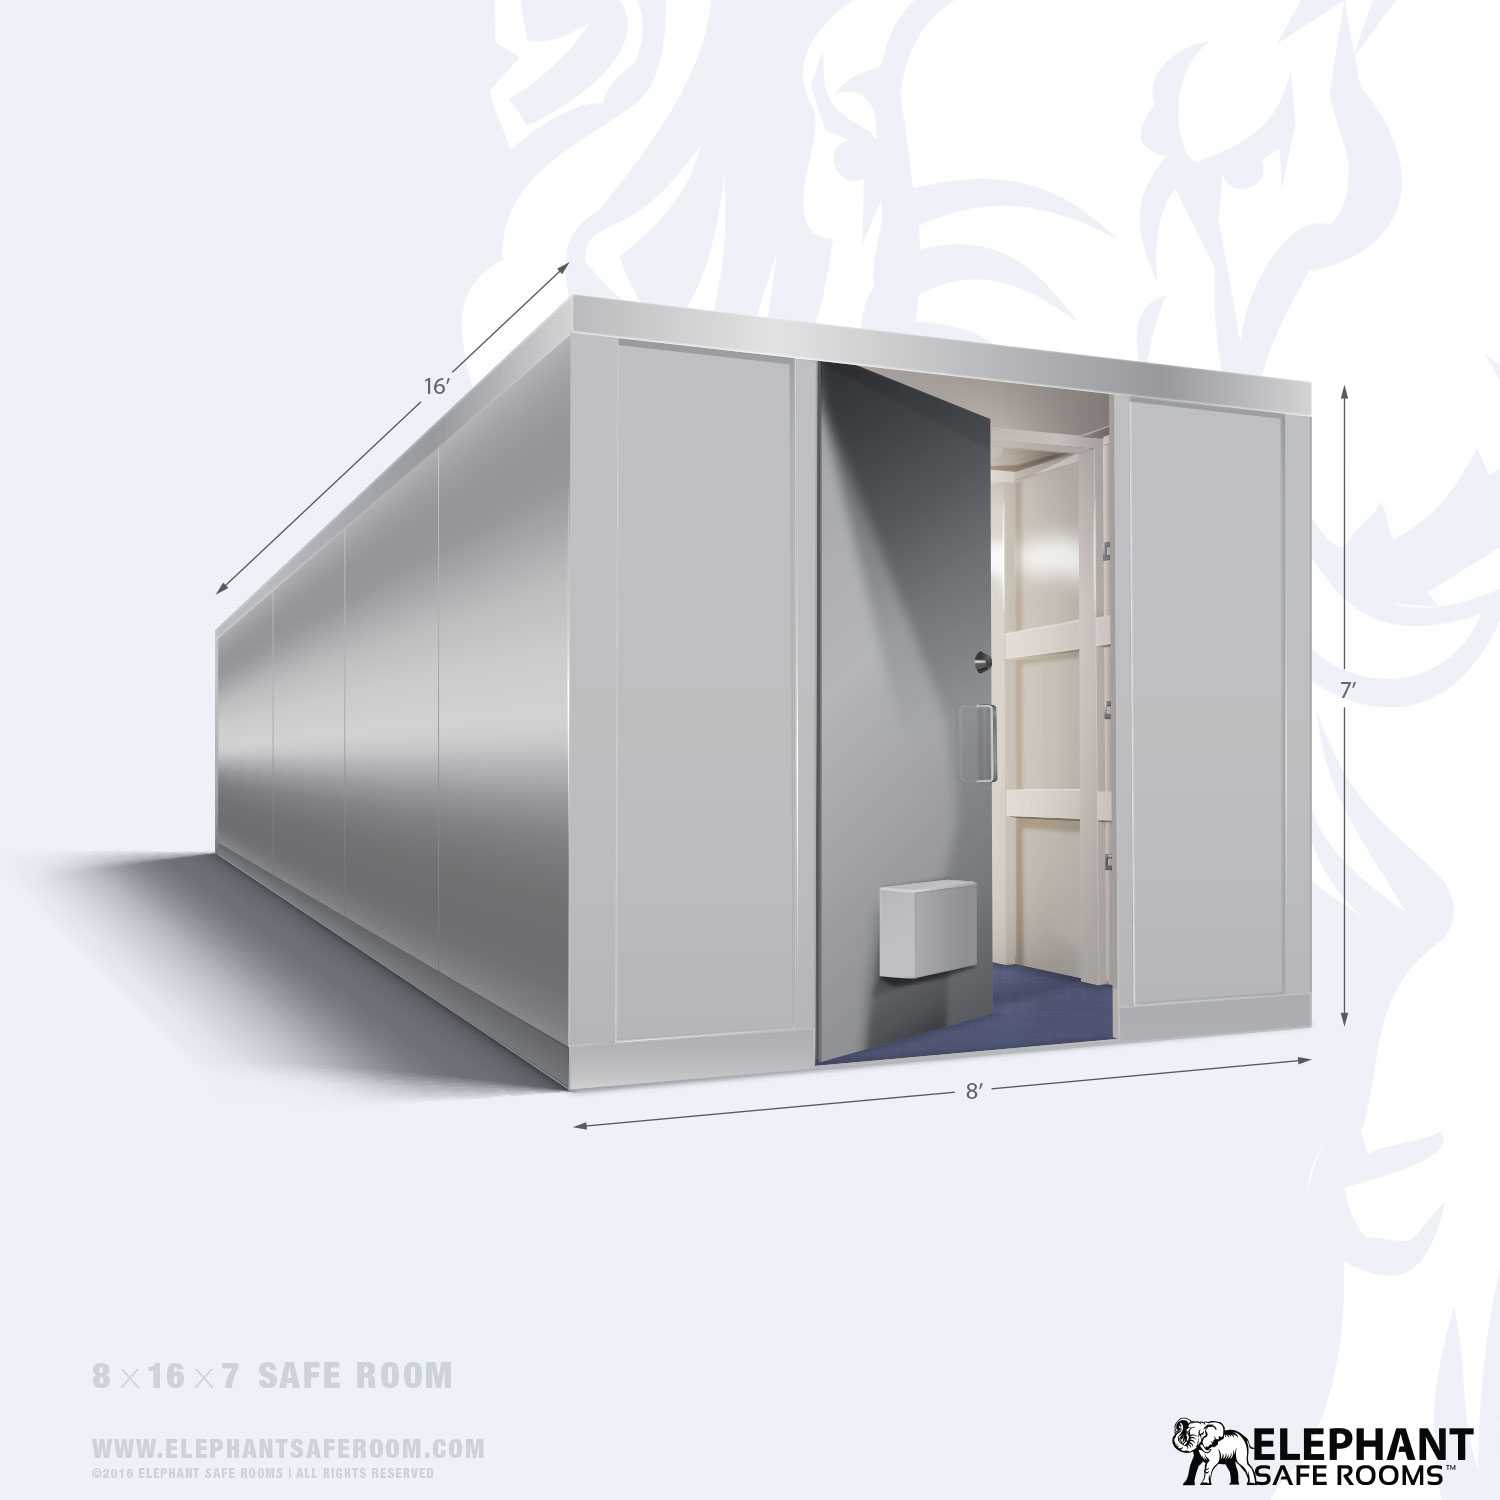 8 39 x 16 39 safe room elephant safe room for Safe room